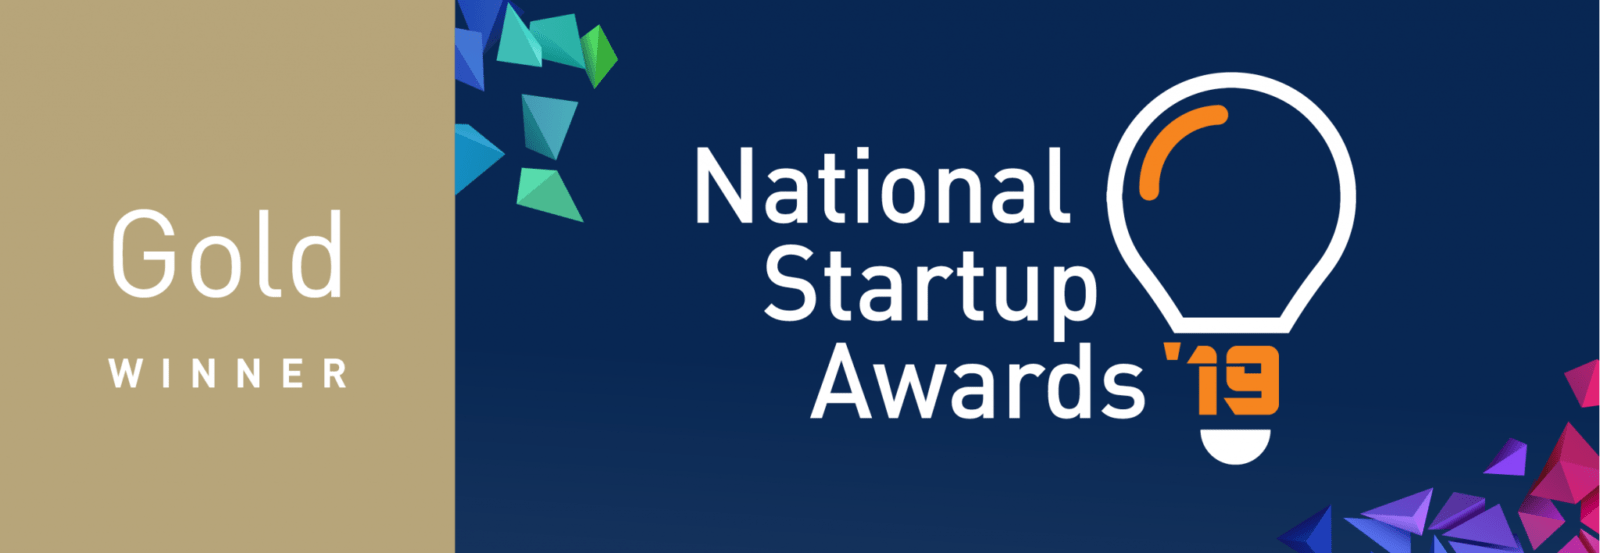 Gold winner of the National Startup Awards 2019